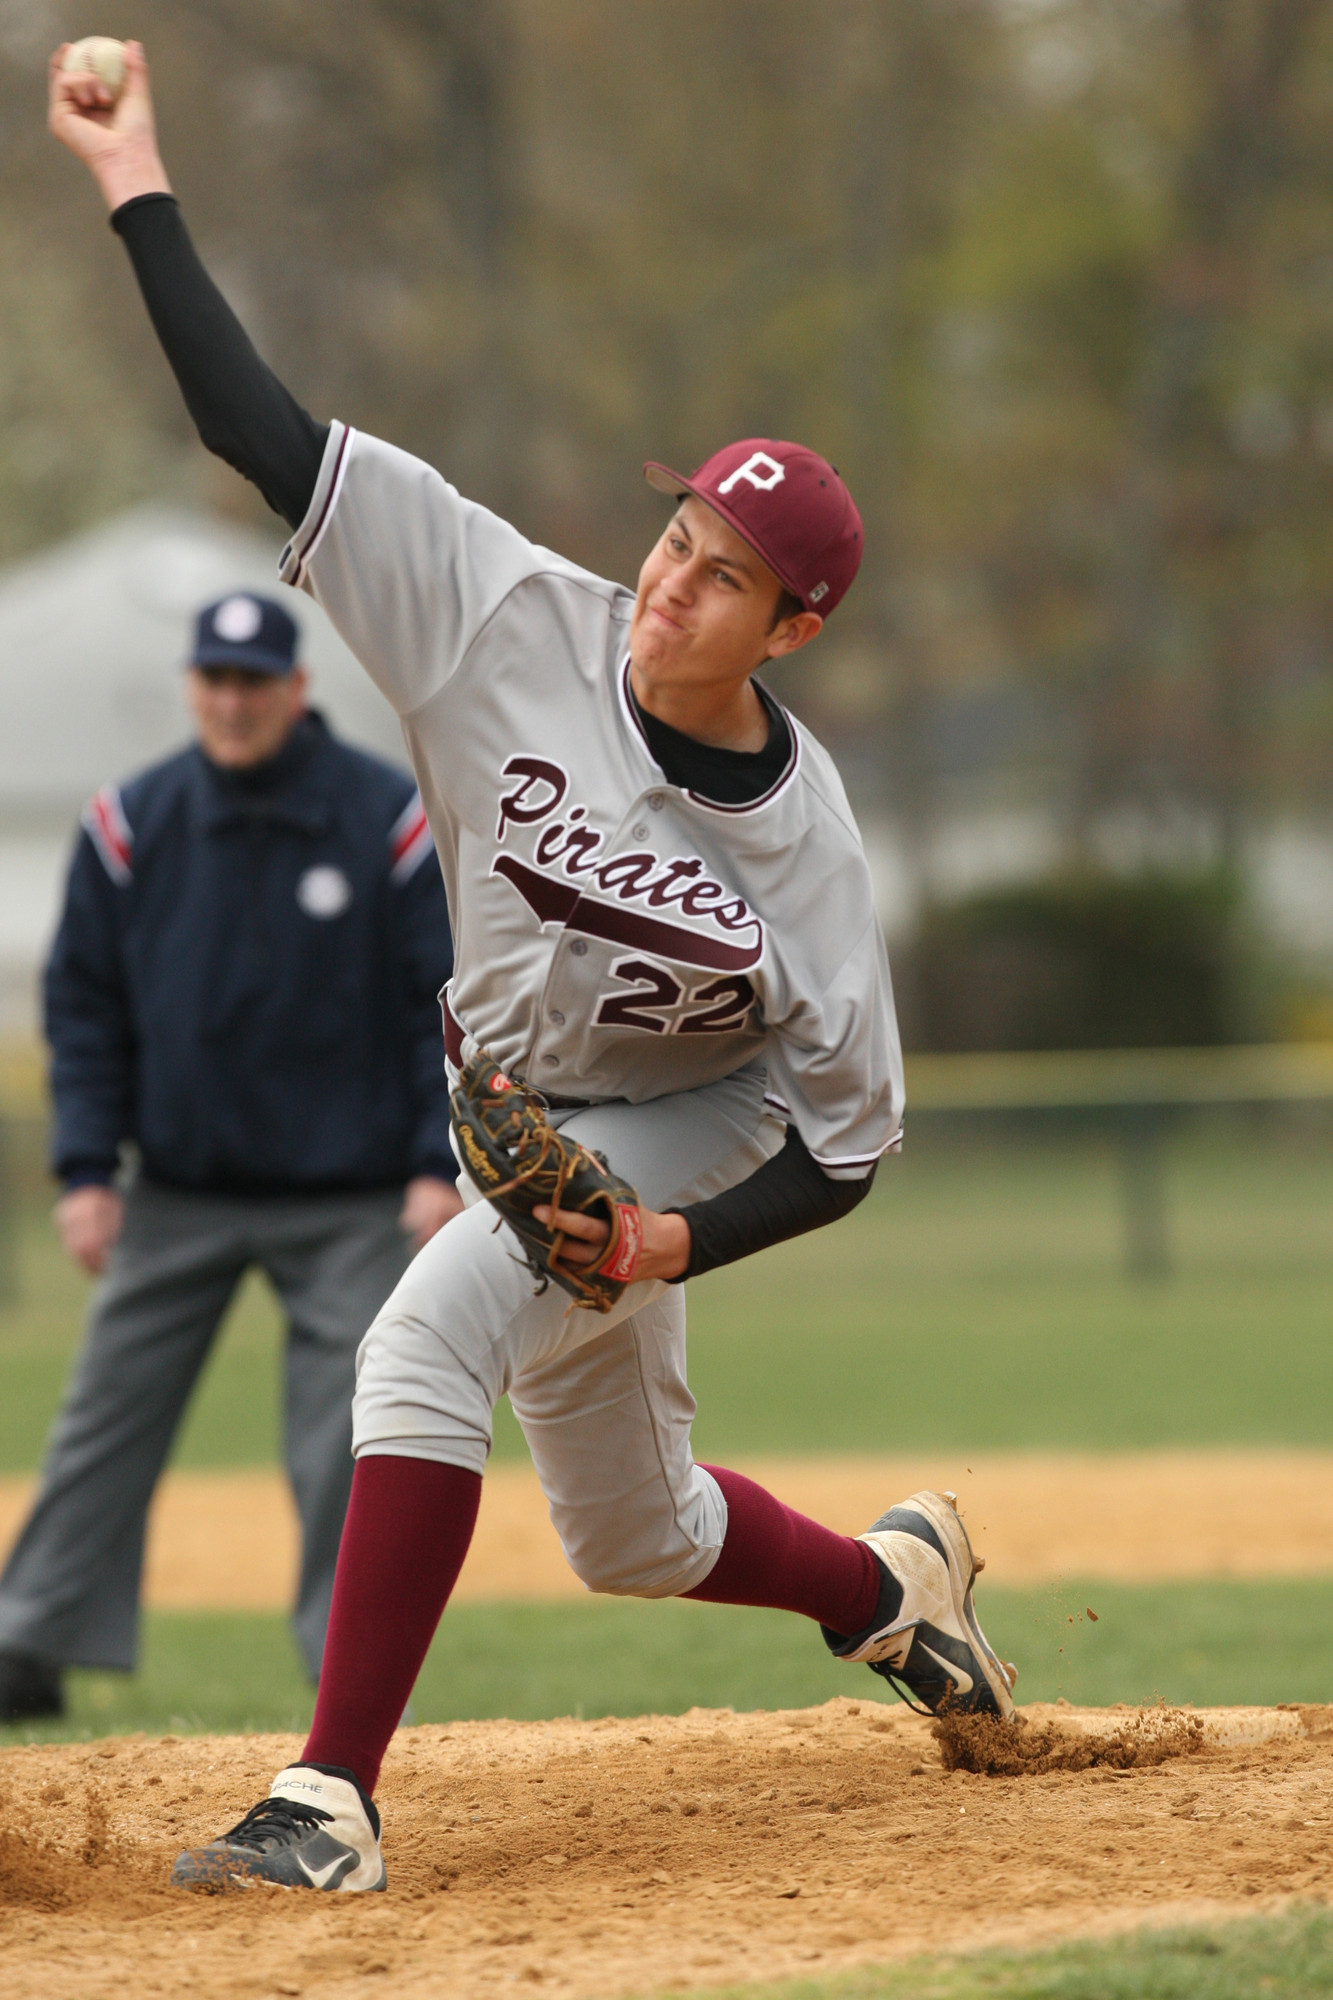 Mepham's Jason Foley was dominant in a 3-0 shutout of Calhoun in last week's series opener.